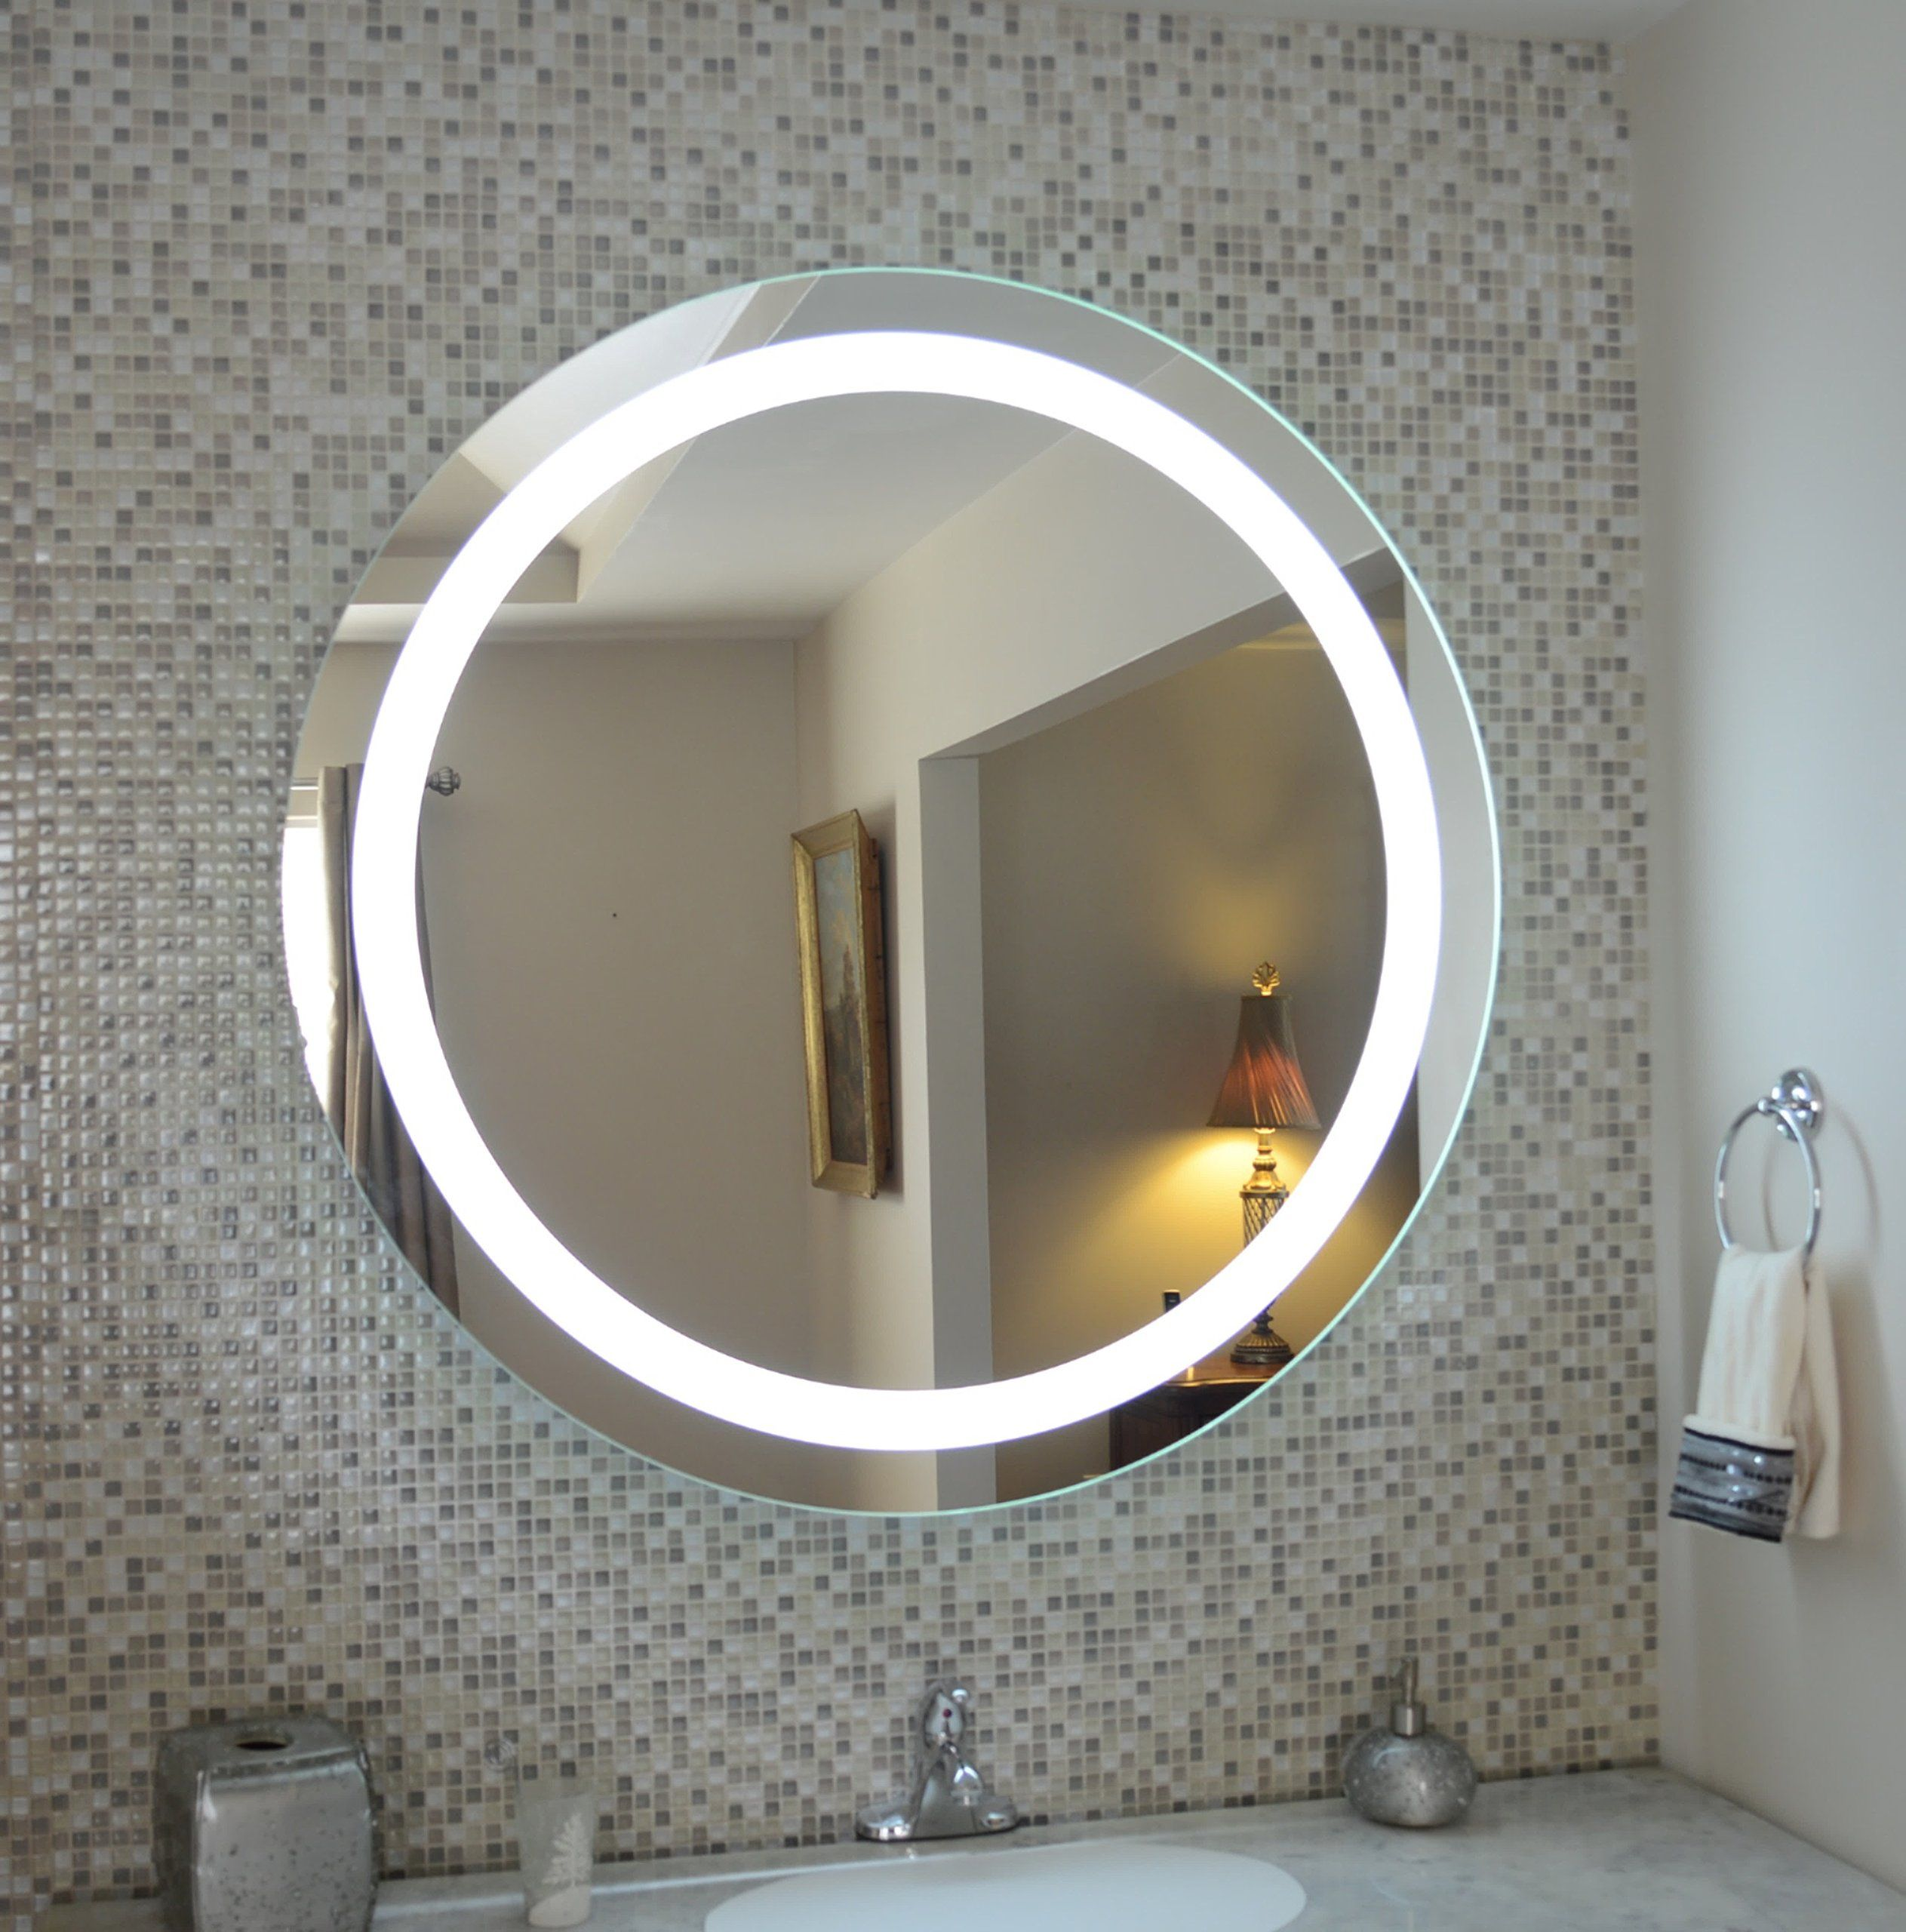 Wall Mounted Lighted Vanity Mirror Led Mam1d40 Commercial: bathroom lighted vanity mirrors